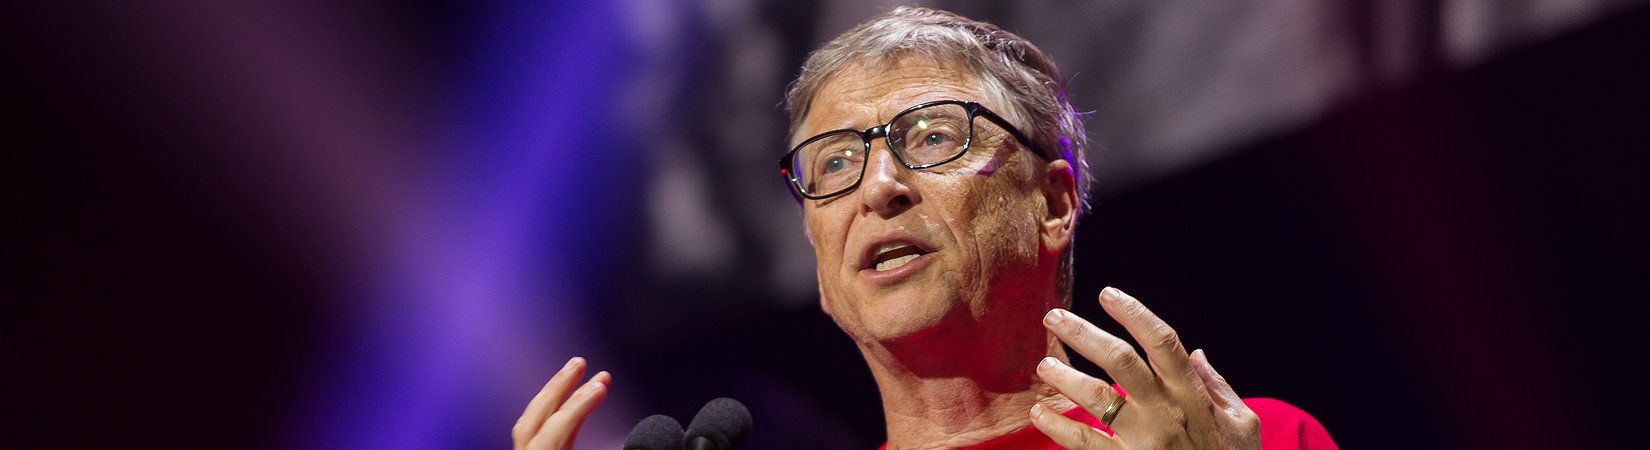 essay bill gates management style Get help on 【 bill gates essay 】 on graduateway ✅ huge assortment of free essays & assignments ✅ the best writers gates attended lakeside school, seattle's most exclusive prep school, where he was able to develop his programming skills on the school's minicomputer.